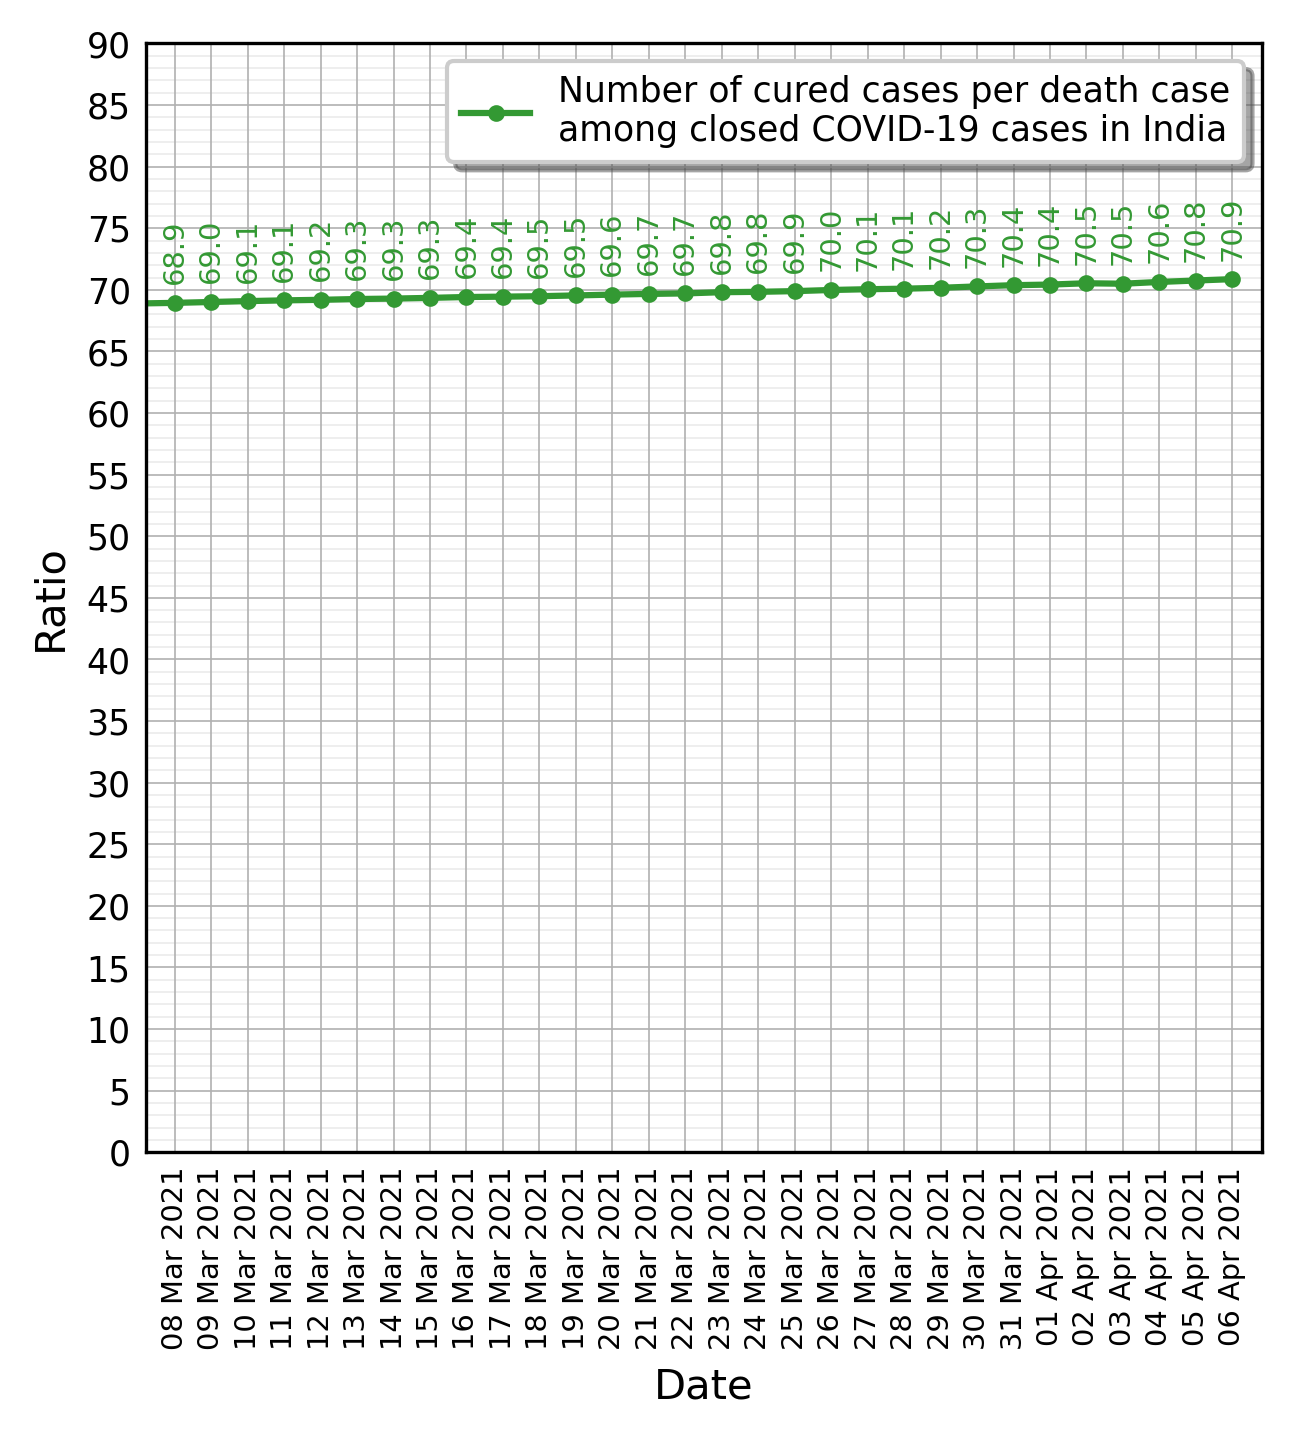 India COVID-19 cases cured ratio graph for the last 30 days